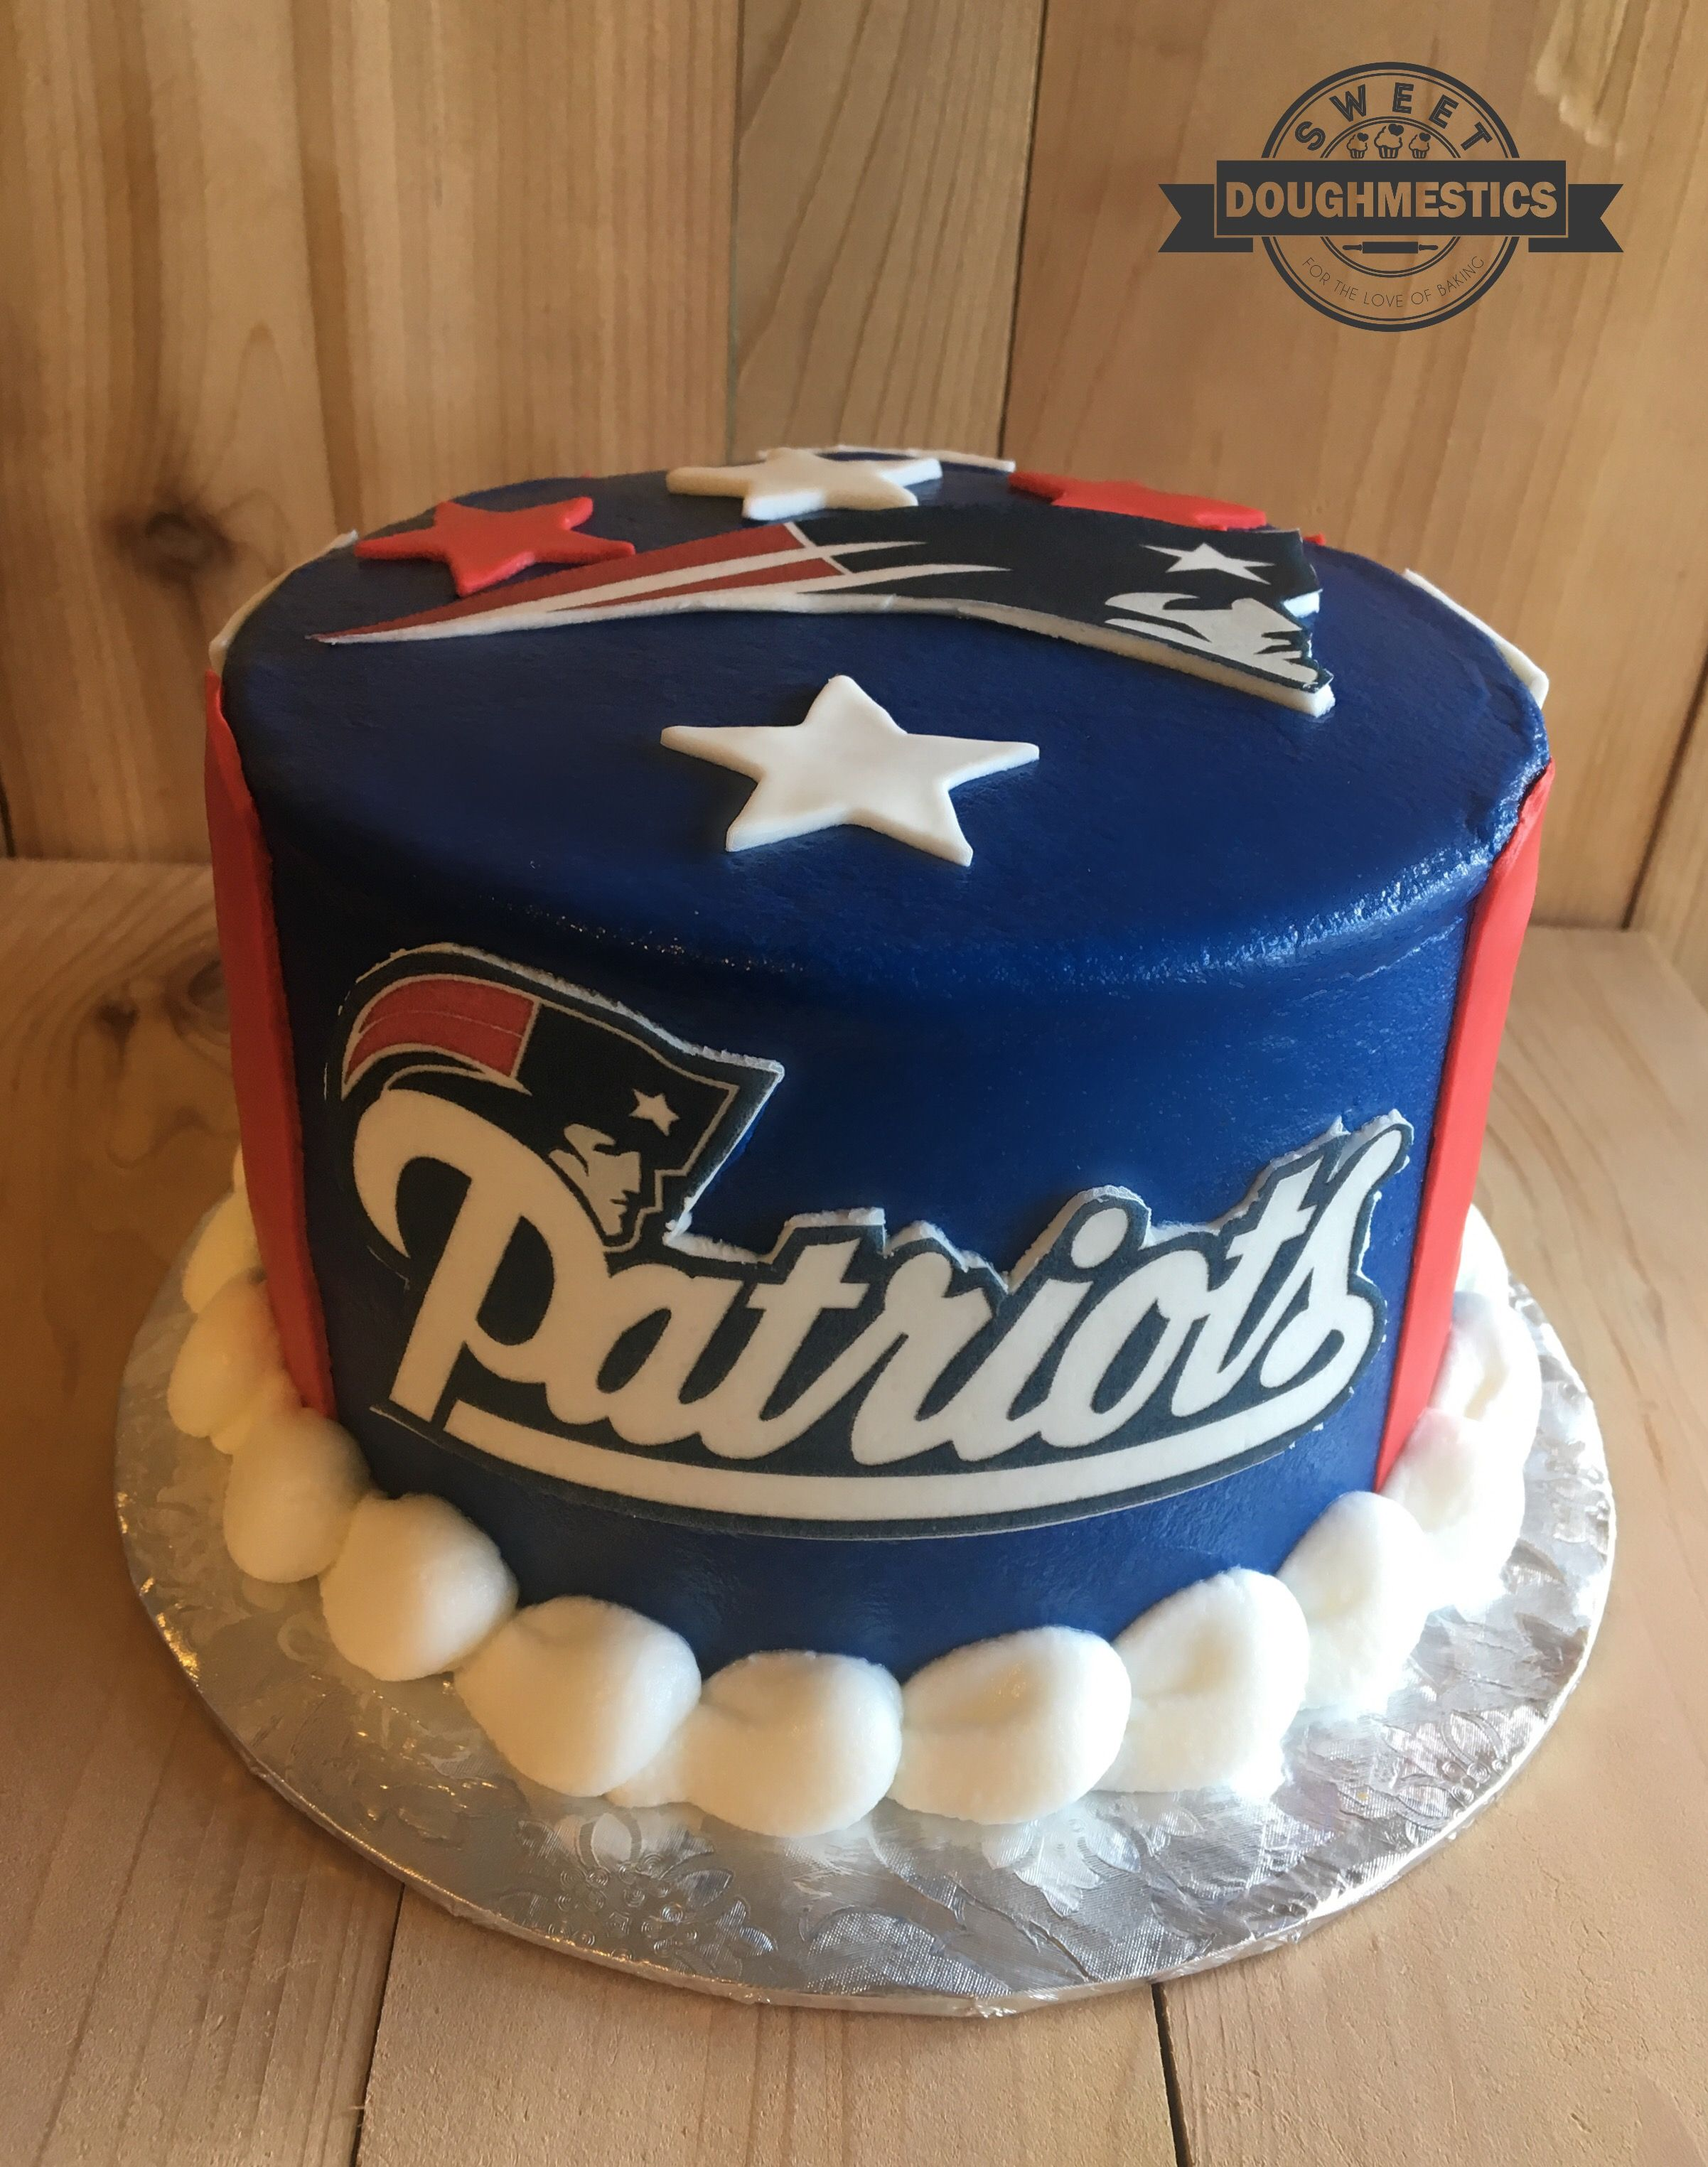 New England Patriots Cake By Sweet Doughmestics Patriotic Cake Cake Football Cake